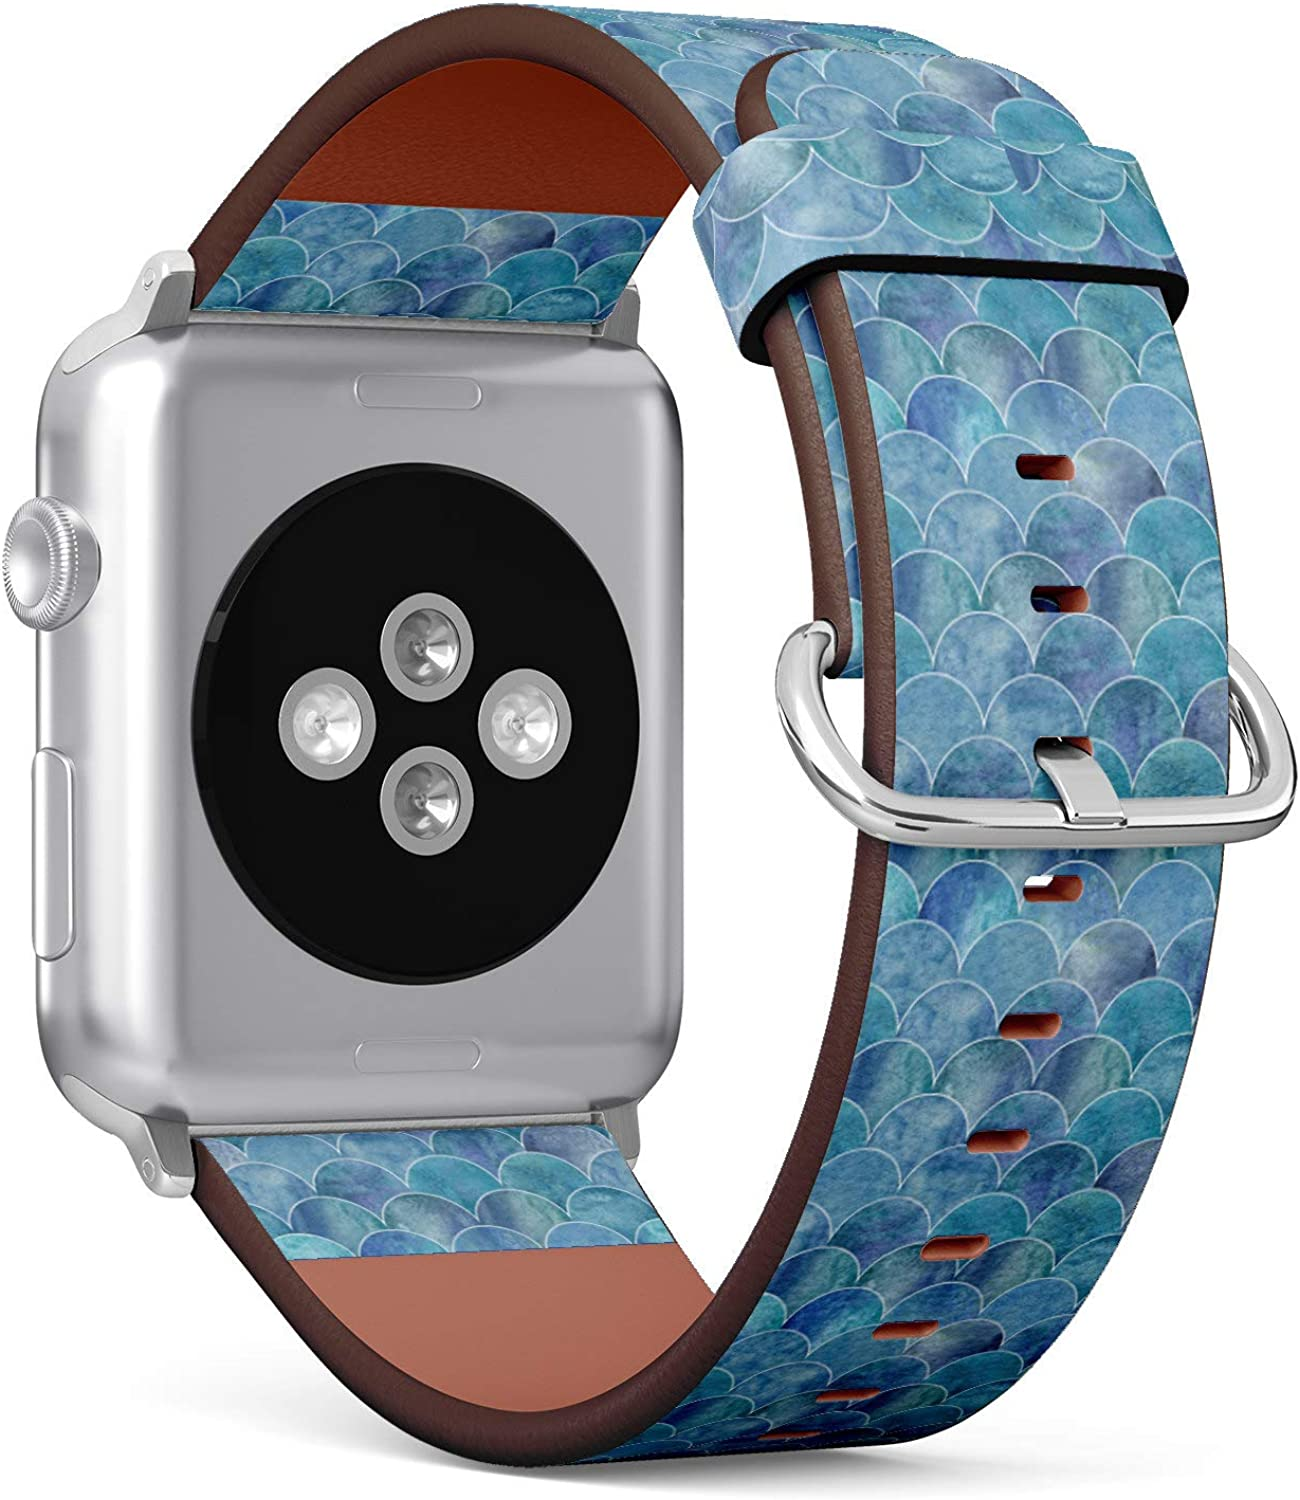 (Mermaid Scale Ocean Wave Pattern) Patterned Leather Wristband Strap for Apple Watch Series 4/3/2/1 gen,Replacement for iWatch 38mm / 40mm Bands